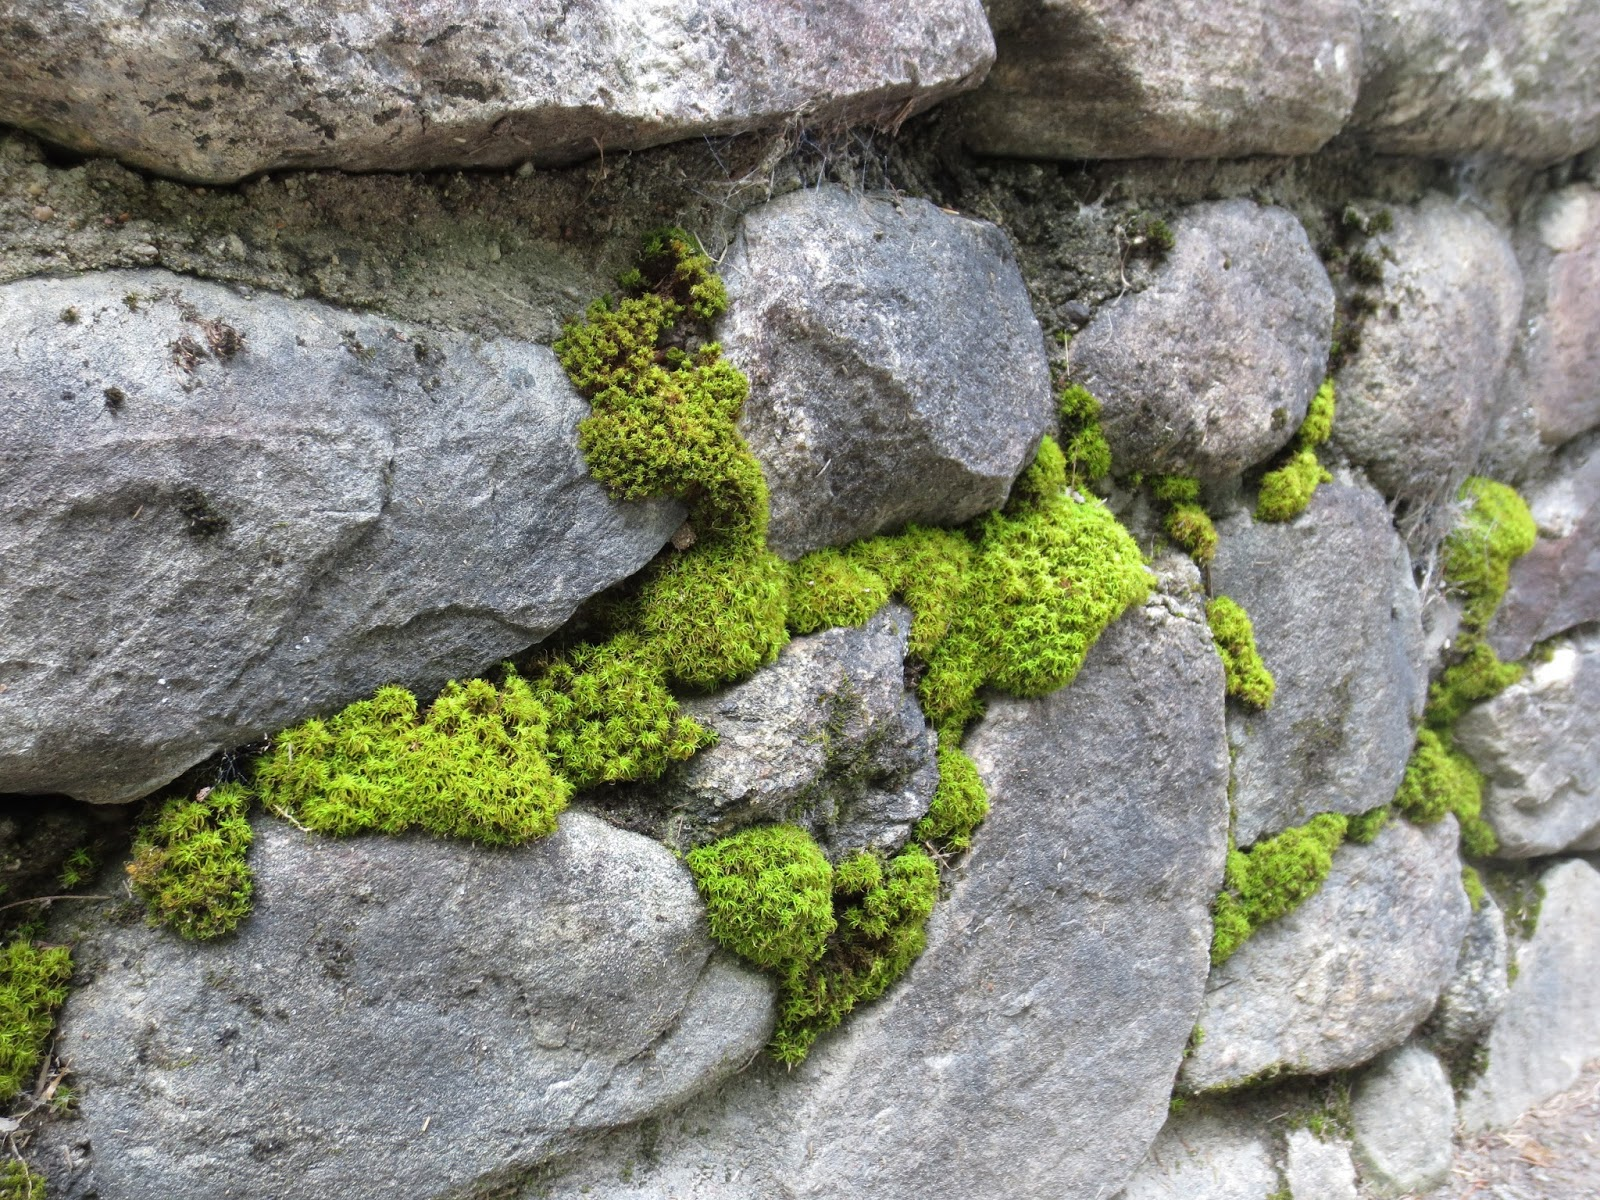 how to clean moss to grow on rocks